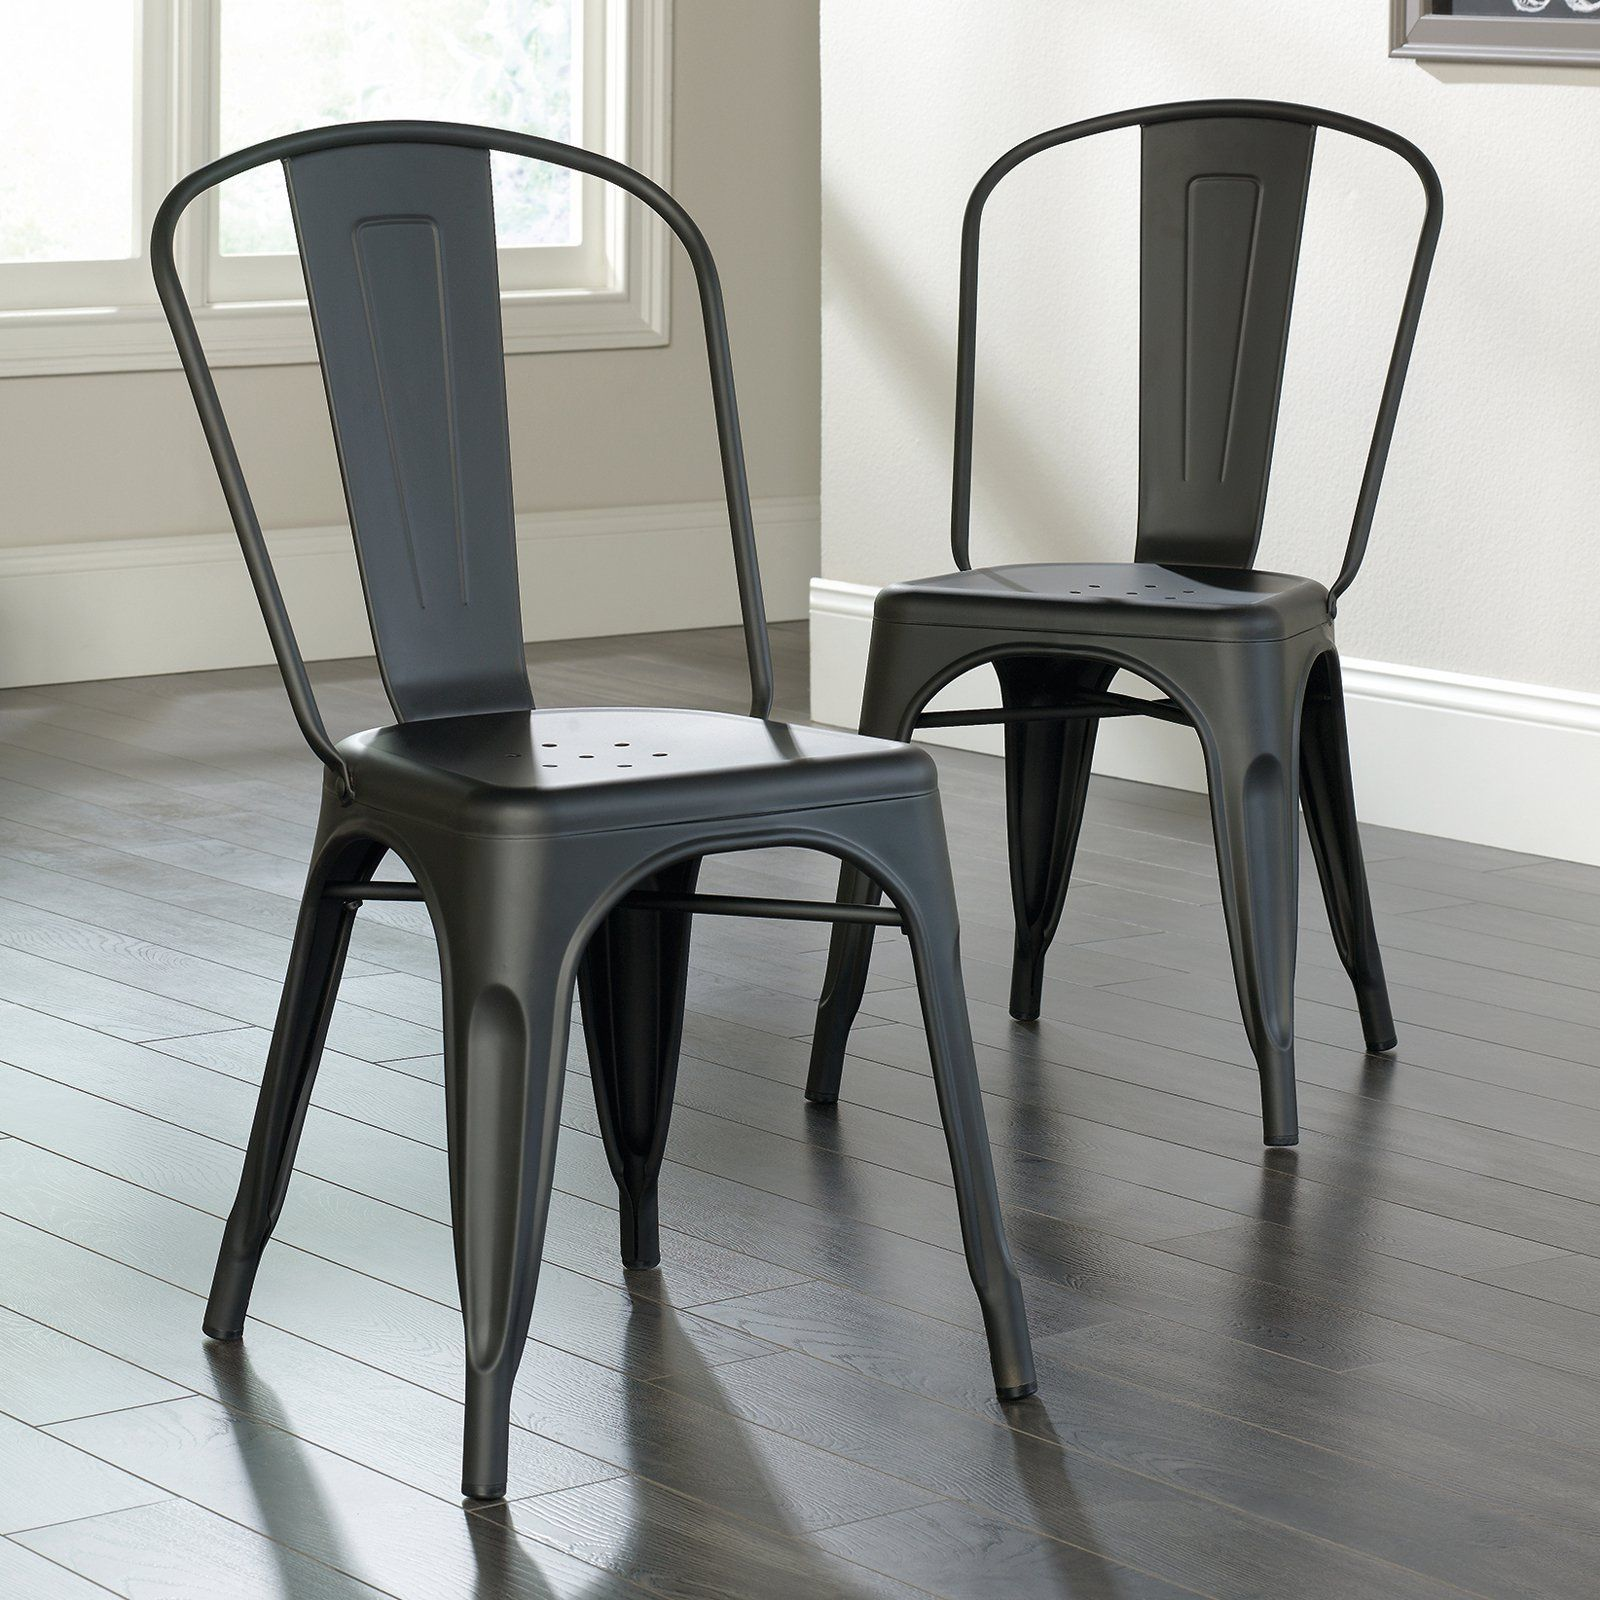 Sauder Woodworking New Grange Metal Dining Chairs   Set Of 2 | From  Hayneedle.com